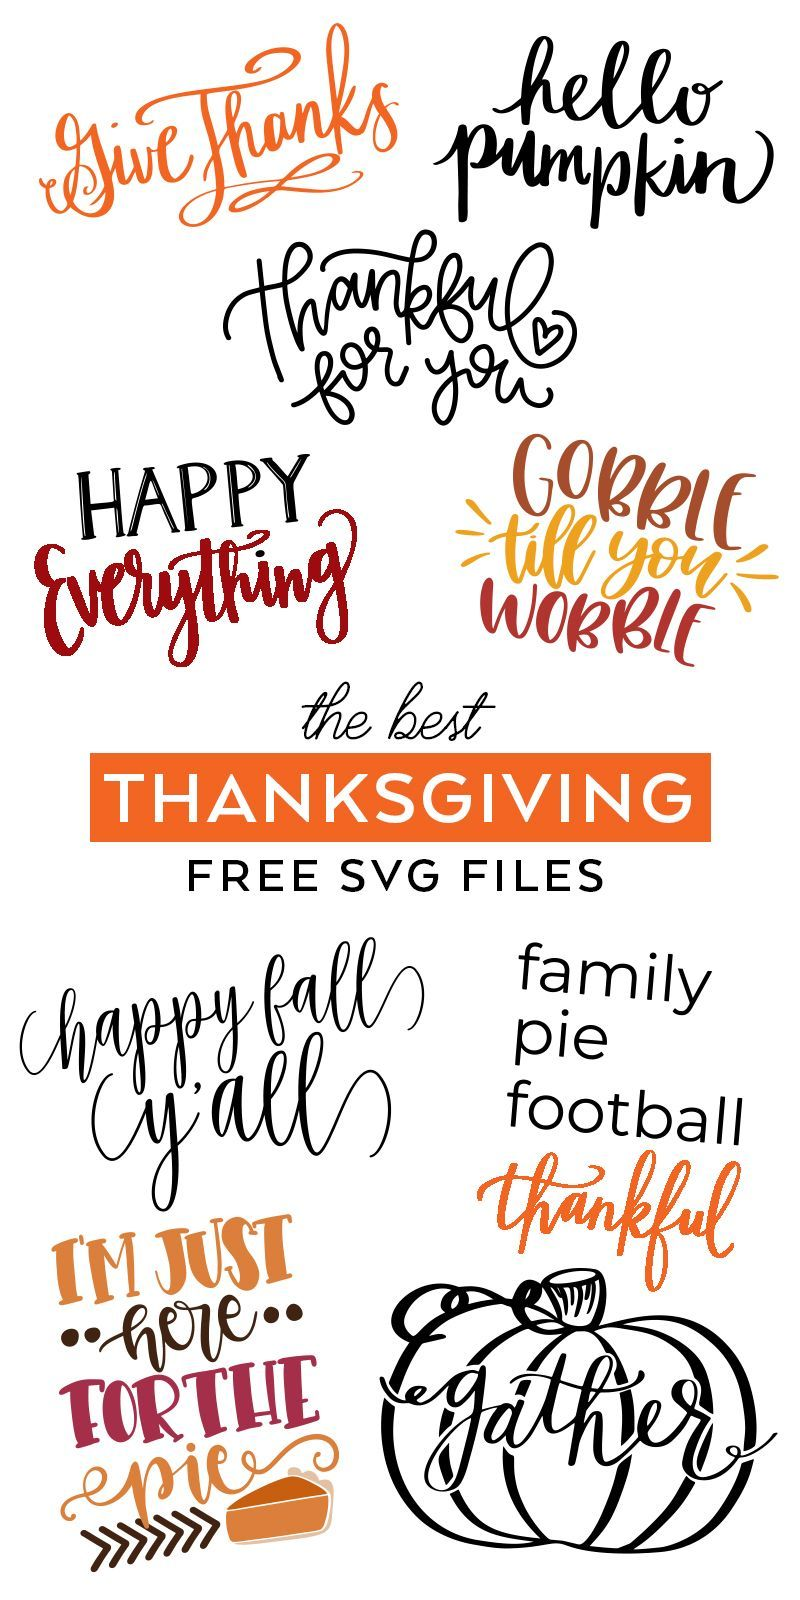 Thanksgiving SVG Files - SVG Cut Files The Best FREE Thanksgiving SVG Files to make DIY Fall and Thanksgiving Decorations- Pineapple Paper Co.The Best FREE Thanksgiving SVG Files to make DIY Fall and Thanksgiving Decorations- Pineapple Paper Co.